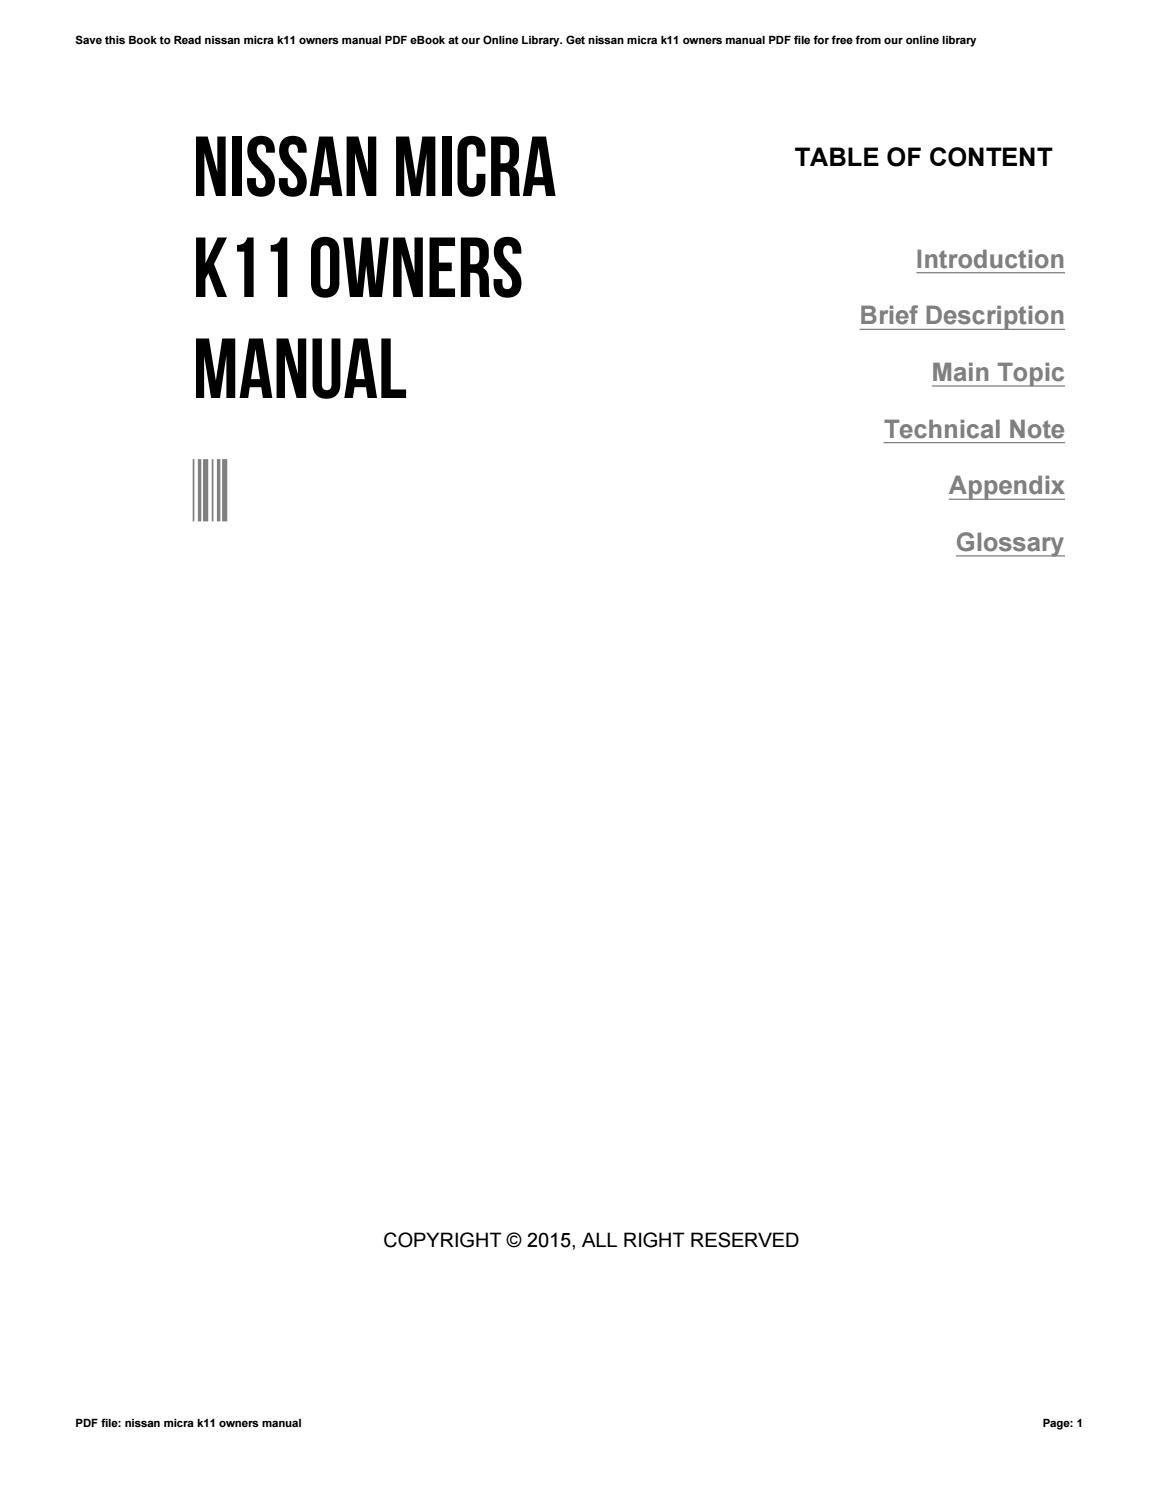 nissan micra k11 owners manual by isdaq82 issuu rh issuu com nissan micra k11 service manual pdf nissan micra k12 service manual pdf